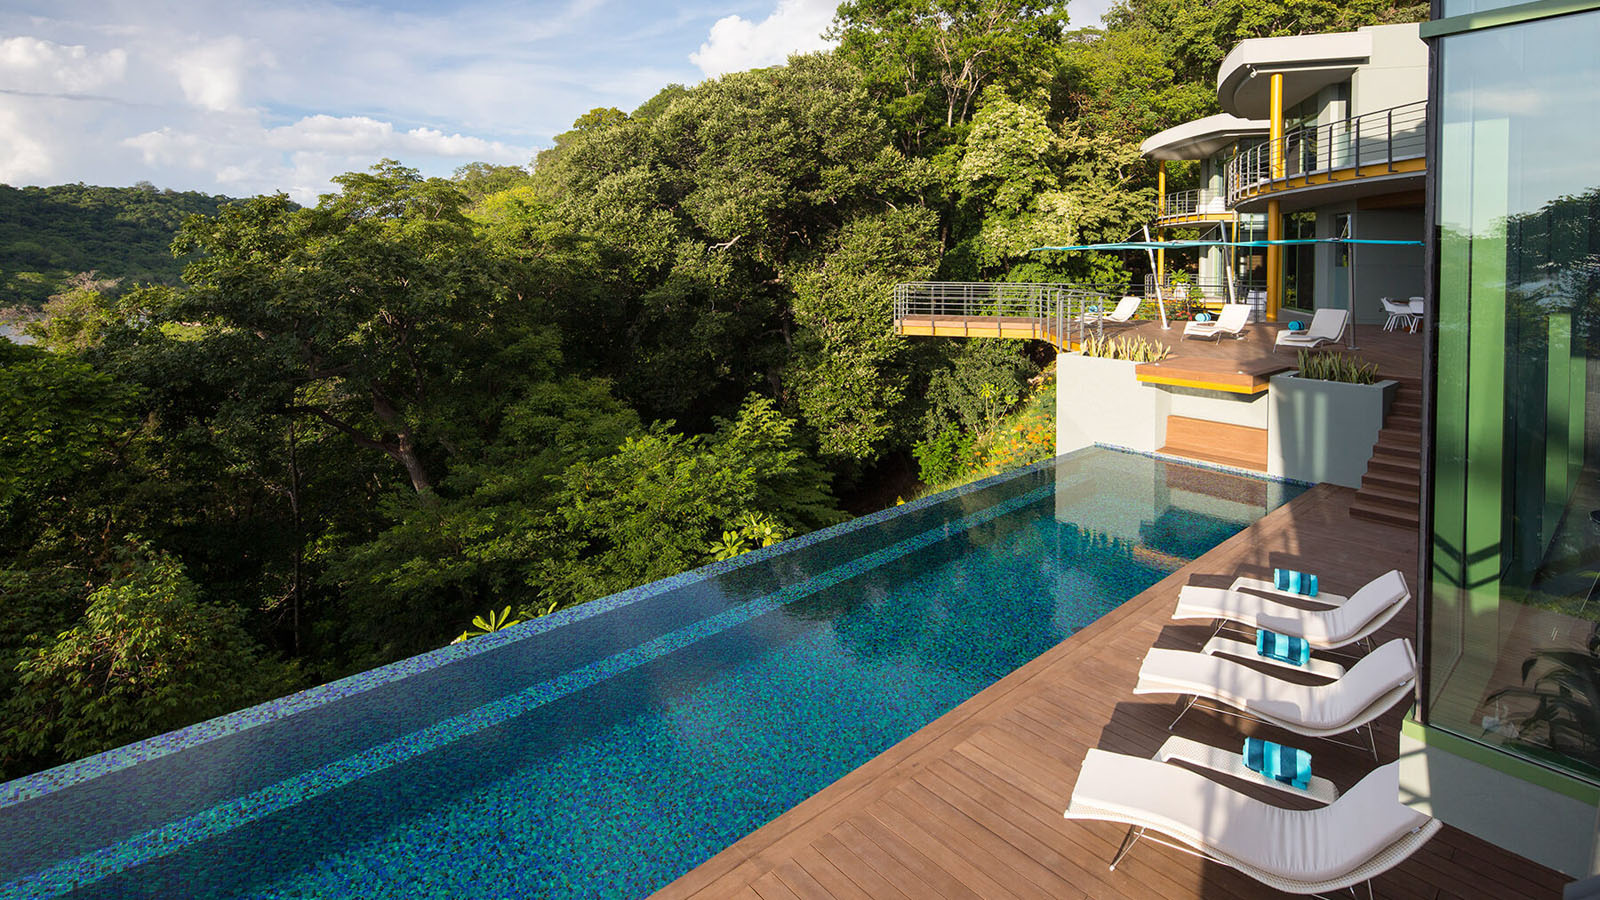 Tropical modern luxury home in the jungle idesignarch for Luxury home architects